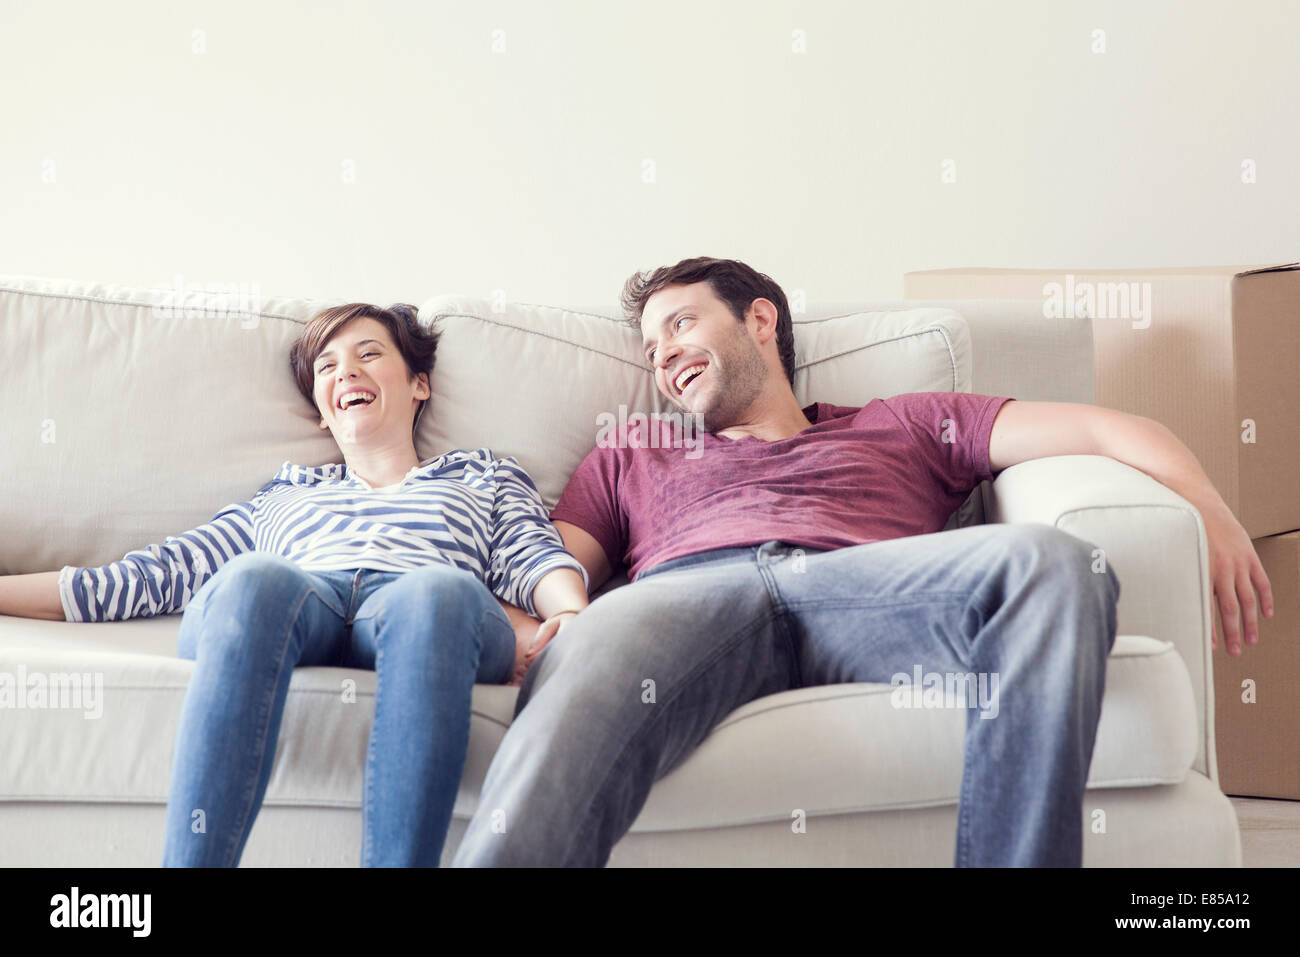 Couple relaxing on sofa while moving house - Stock Image